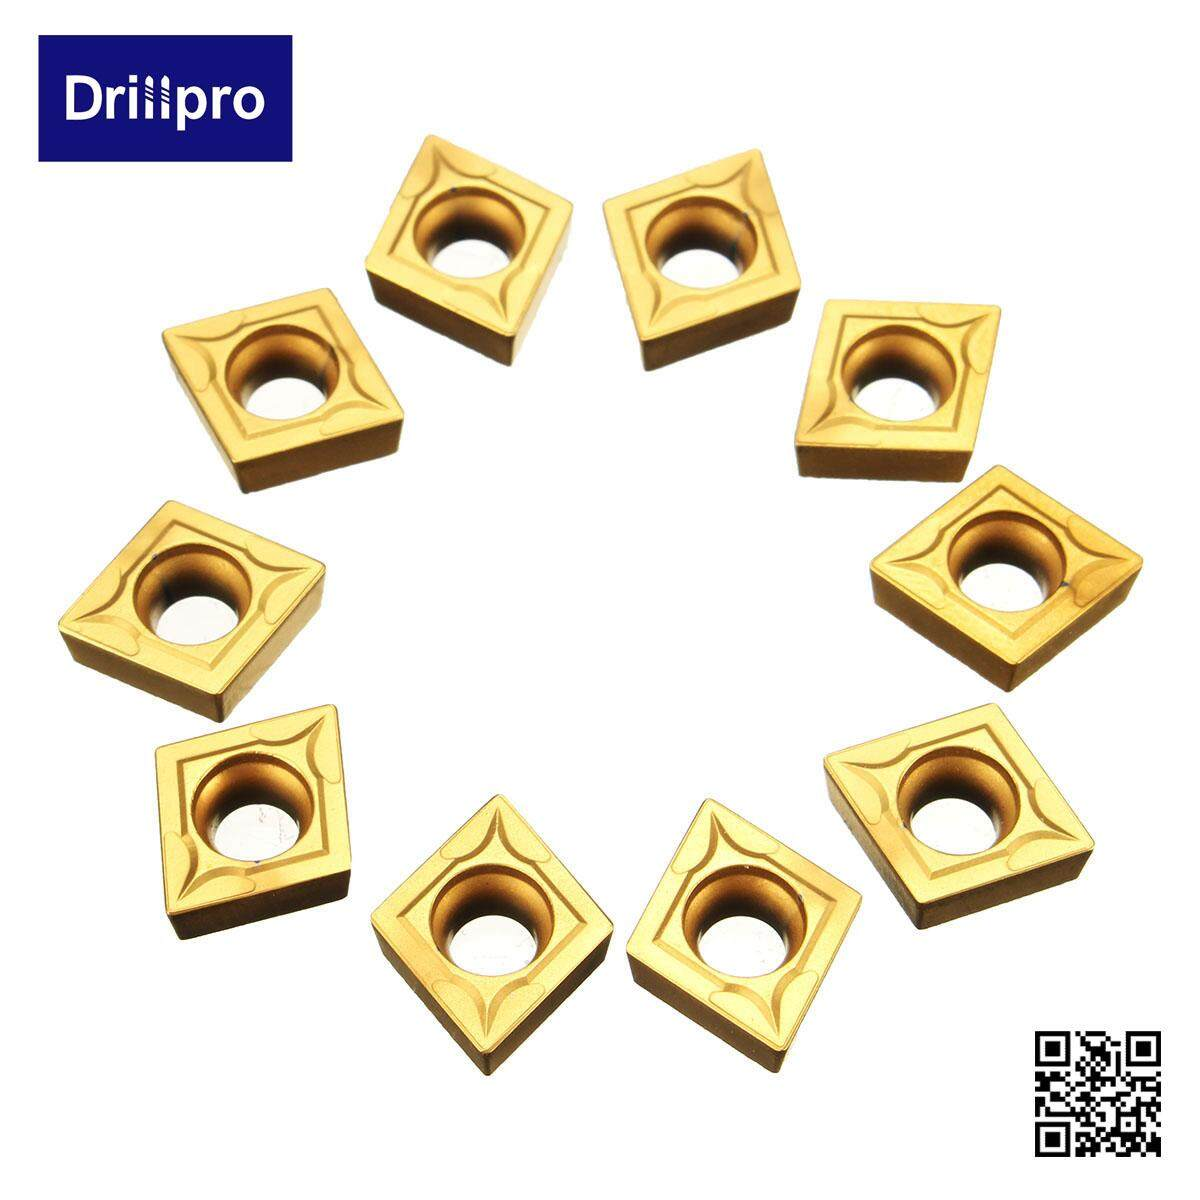 Drillpro 10PCS CCMT09T304 CCMT32.5 Carbide Insert Tip For SCLCR Lathe Turning Boring Tool